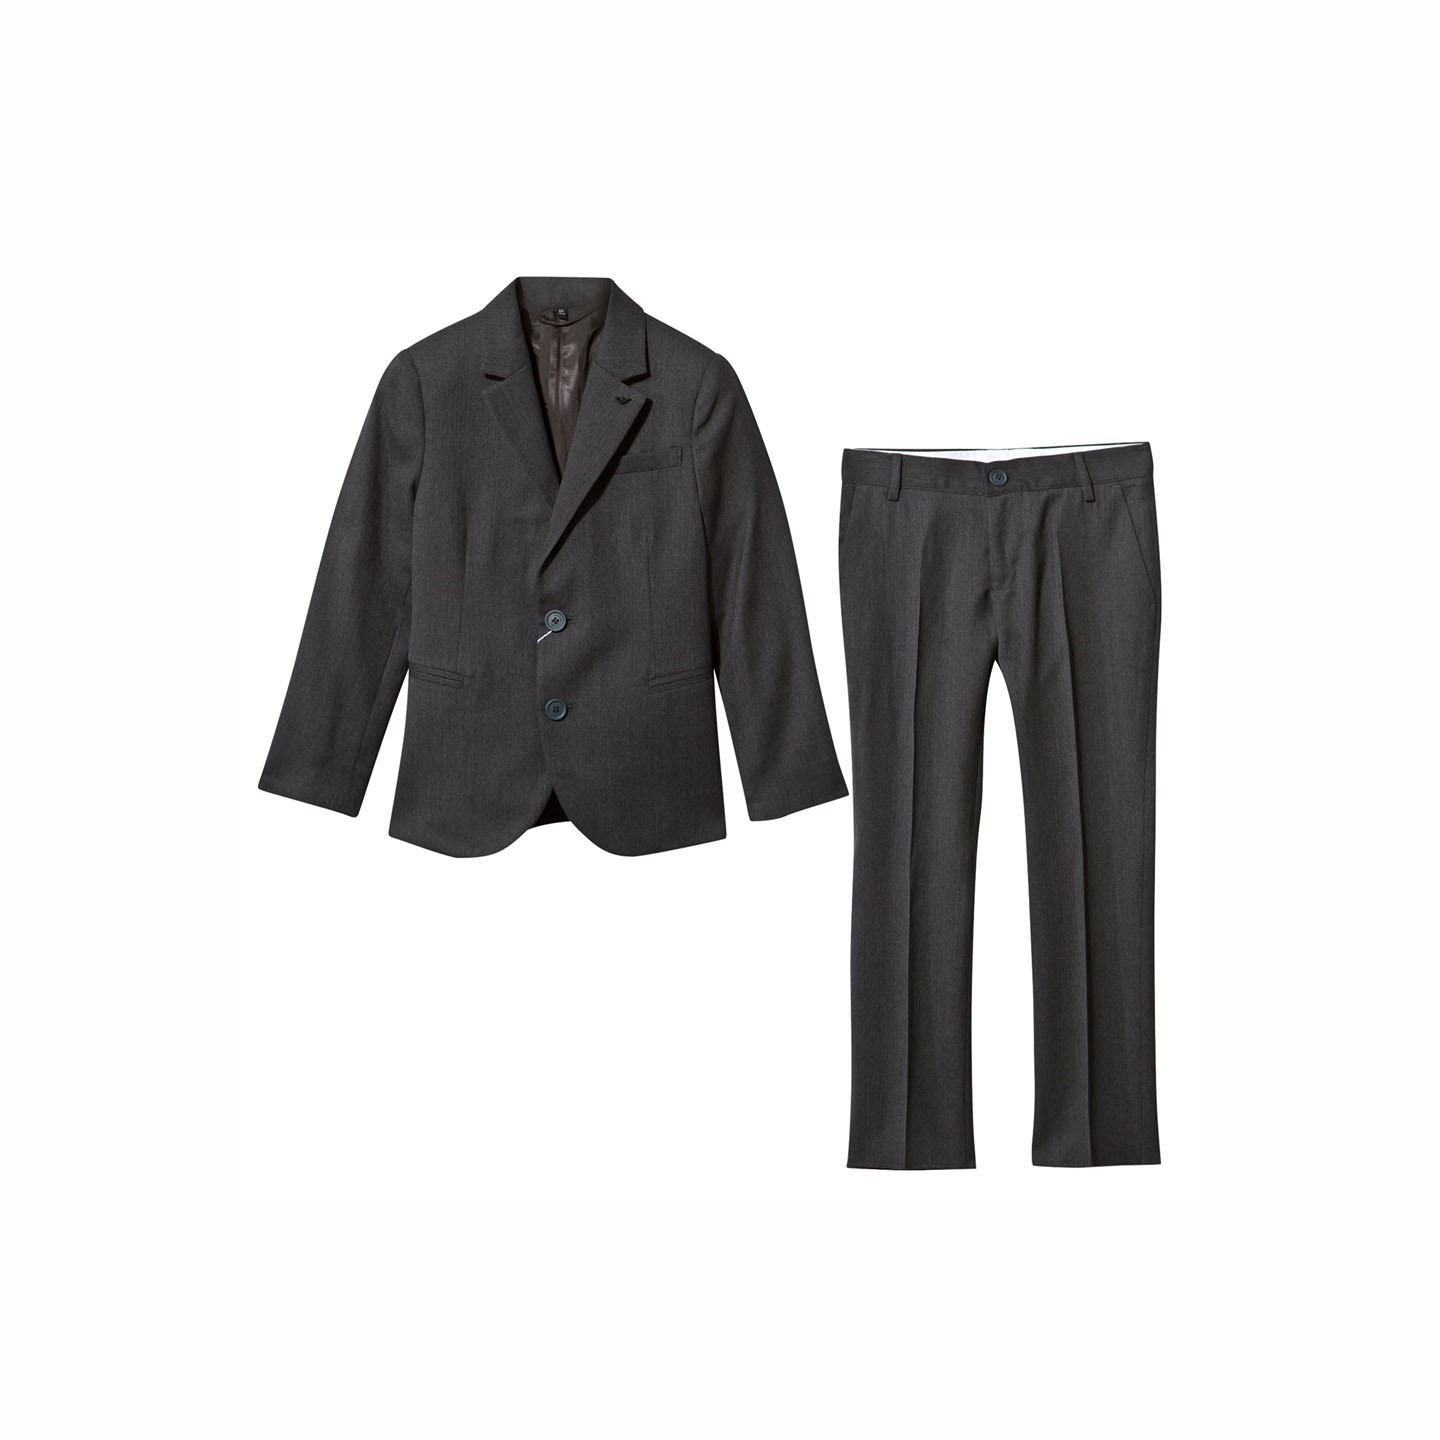 Armani Junior Charcoal Gray Wool Suit, Spring Ring Bearer Attire